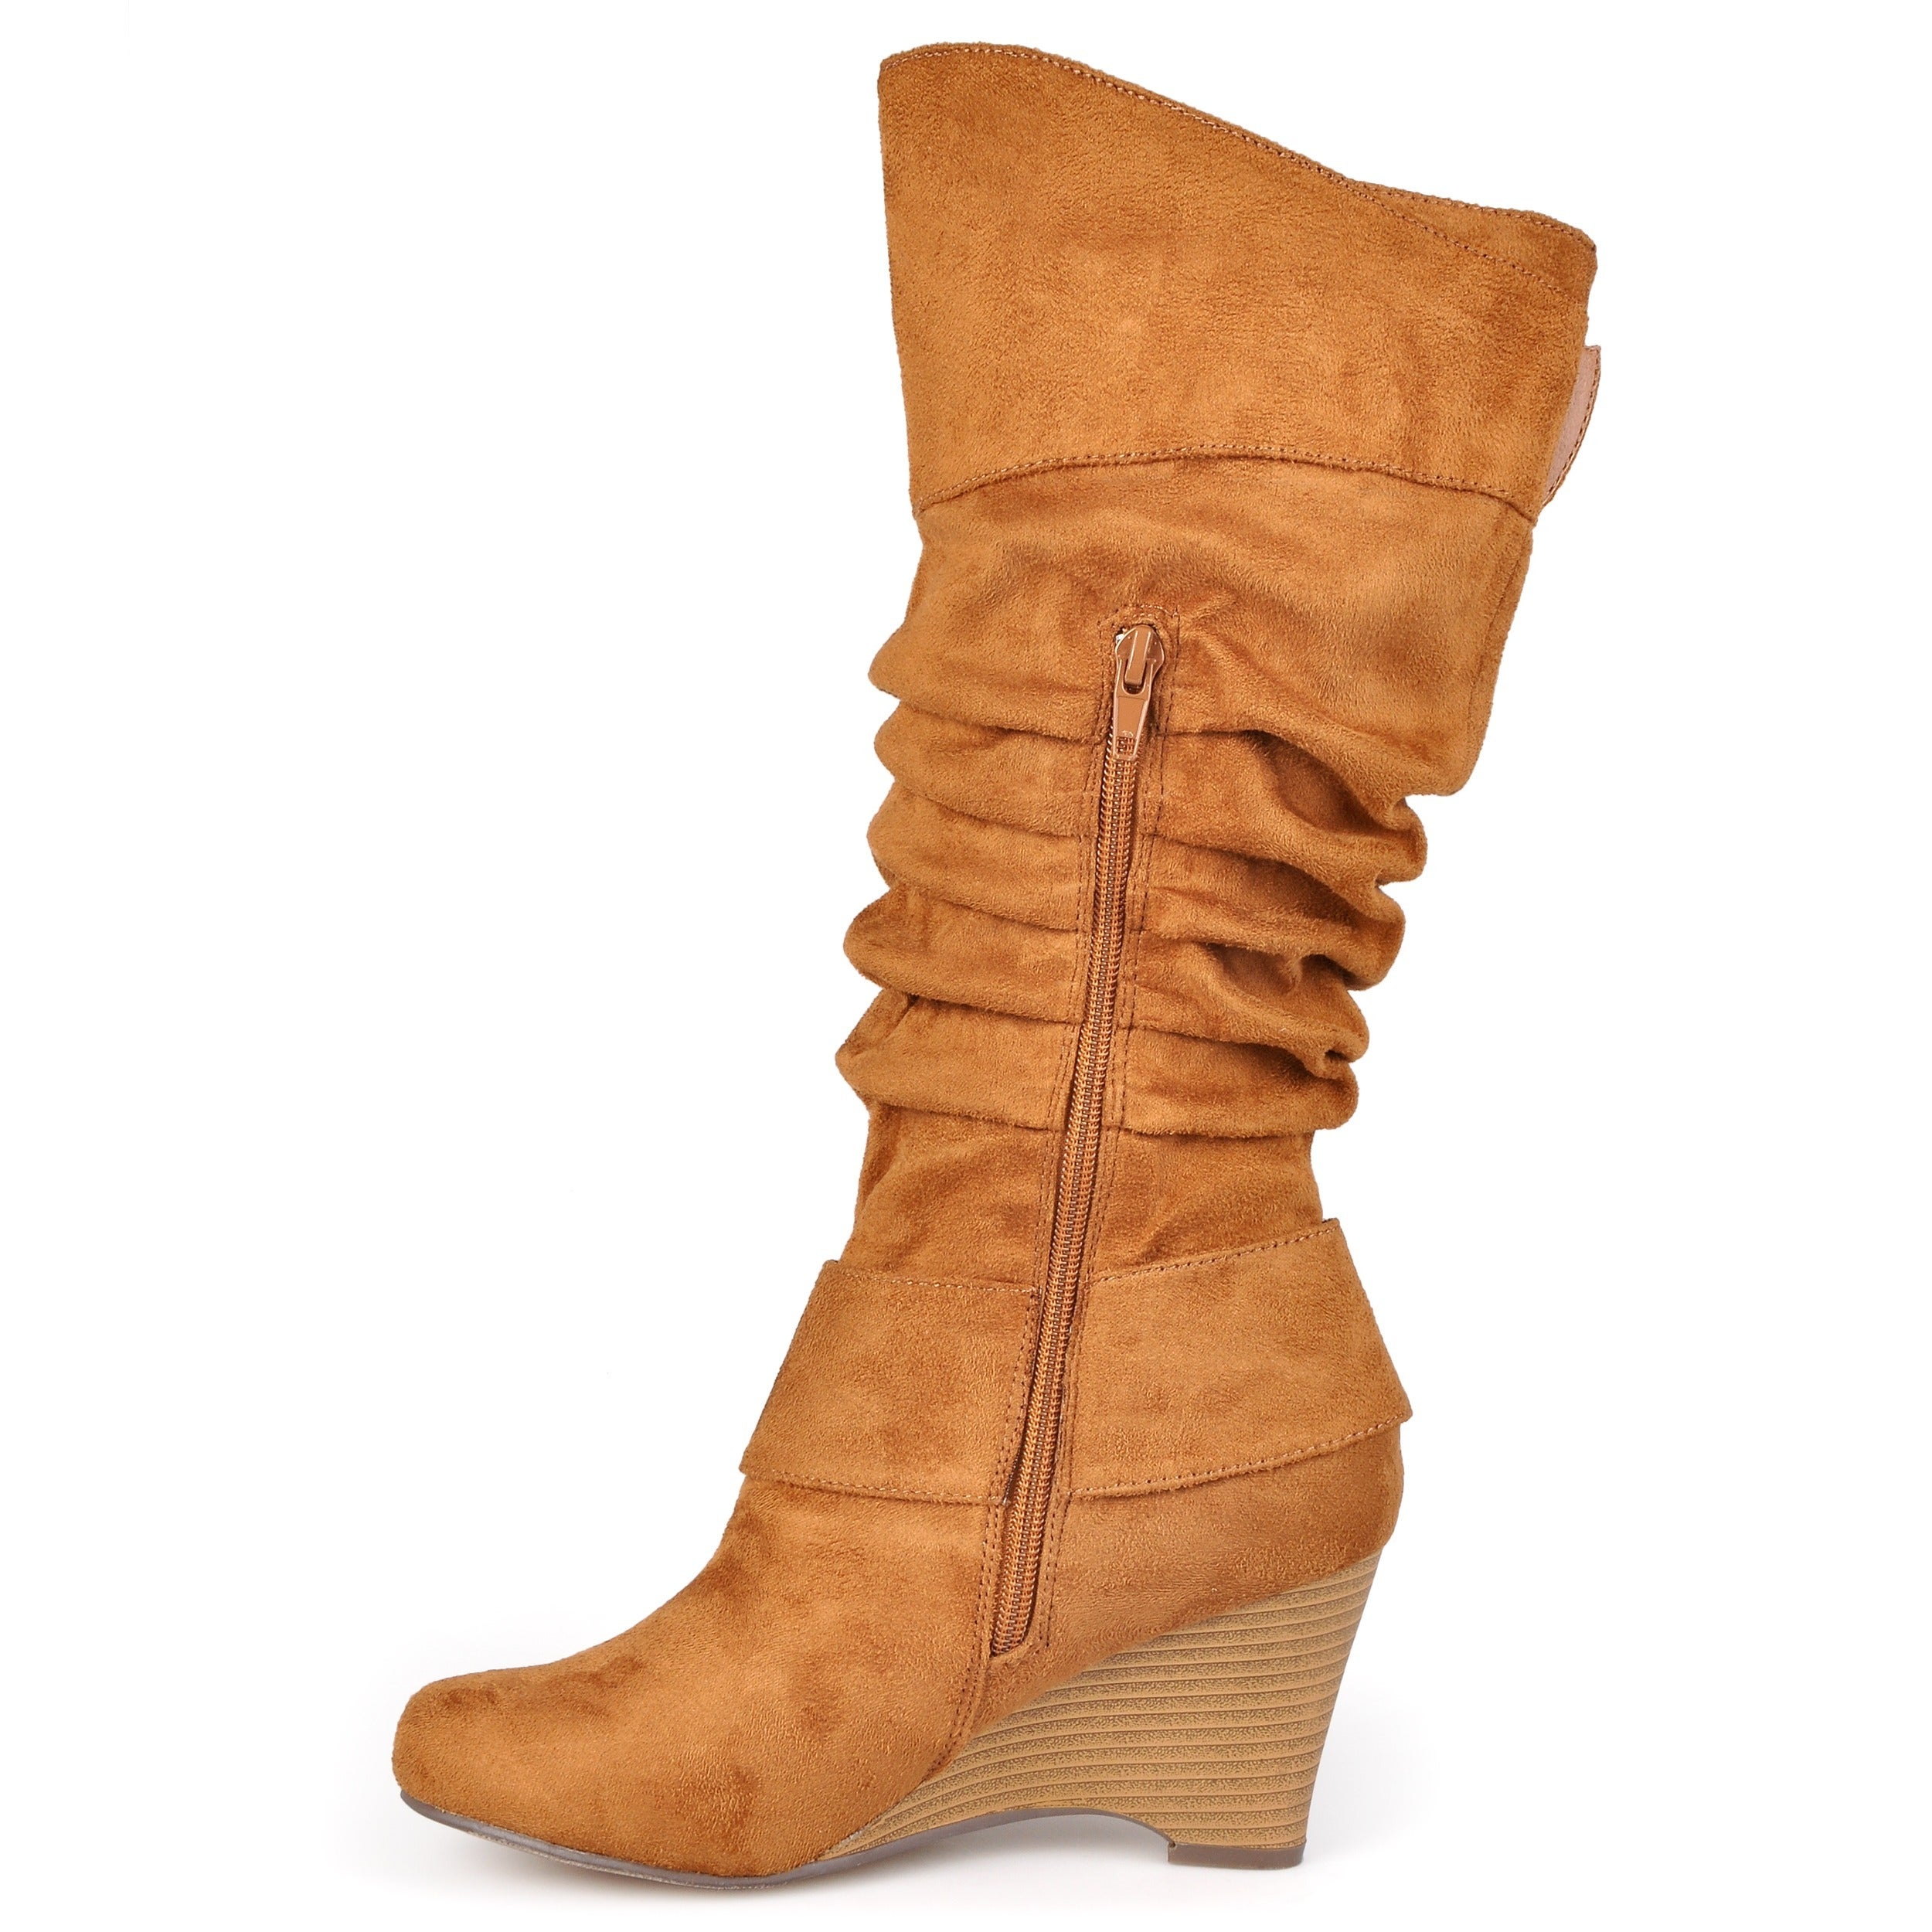 11136bf48f0 Shop Journee Collection Women s Regular and Wide-Calf  Irene-1  Buckle  Slouch Wedge Knee-High Boots - Free Shipping Today - Overstock - 5162852